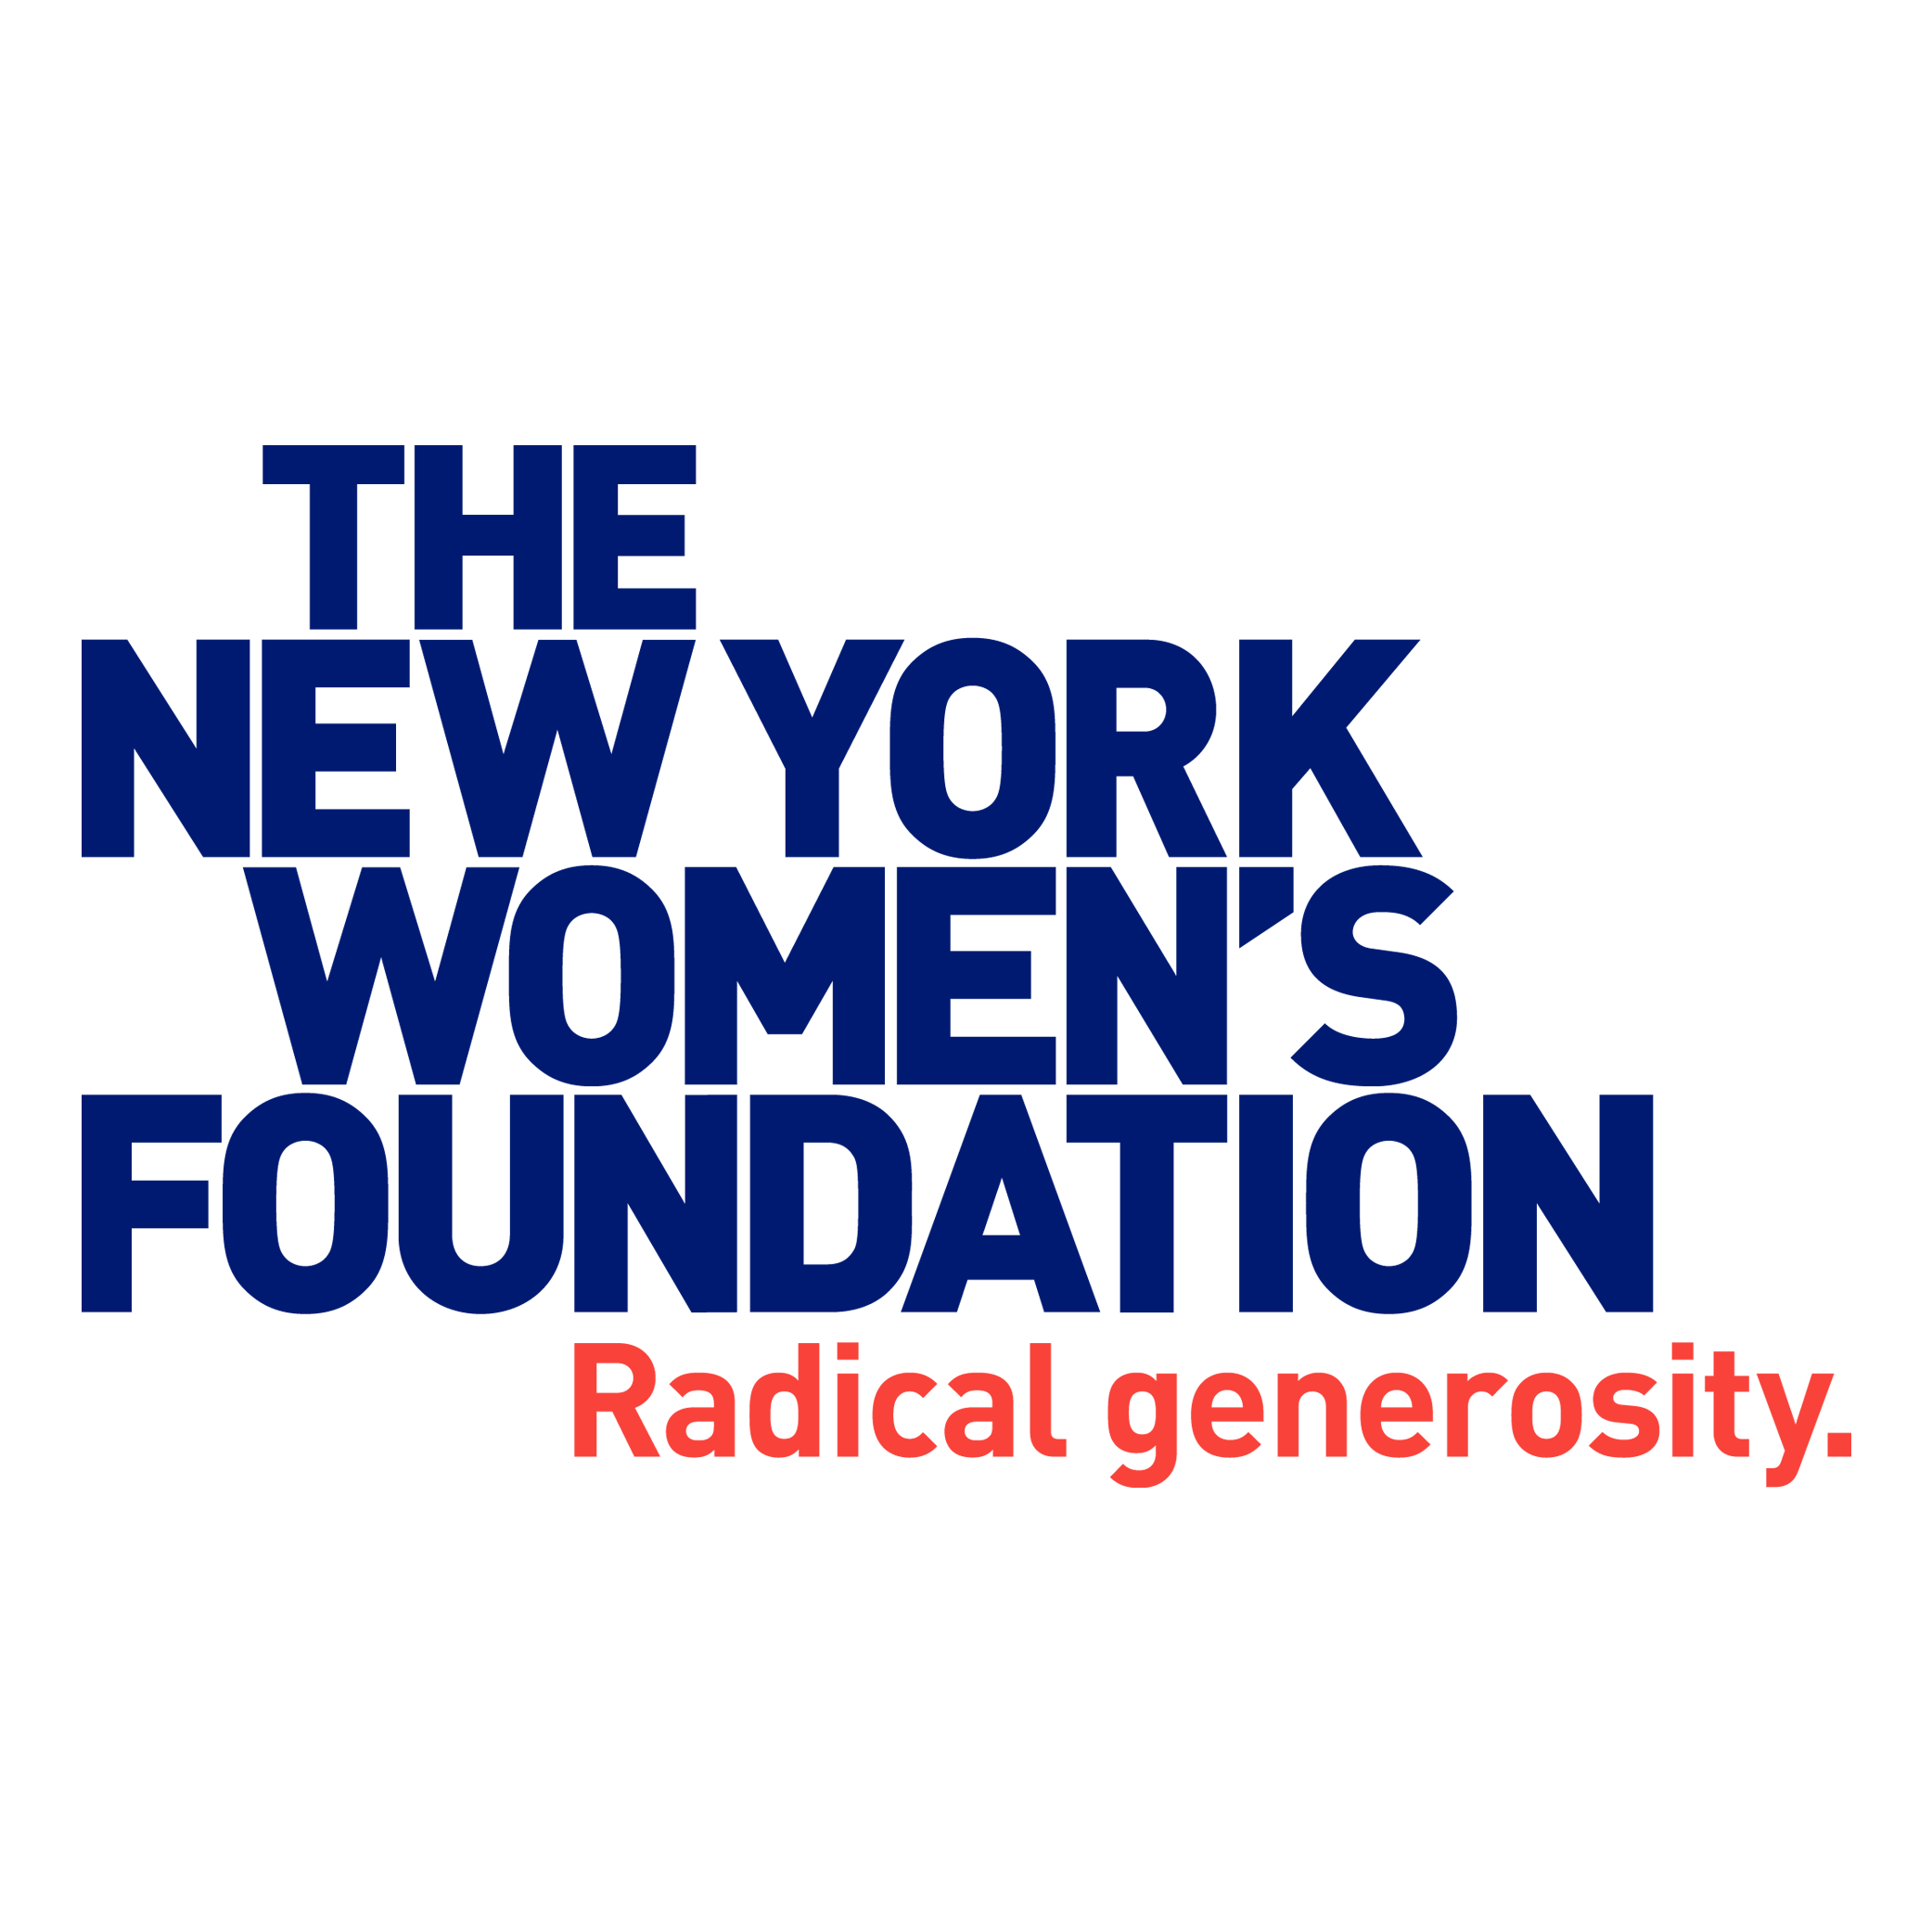 NY Women's Foundation Sq.png